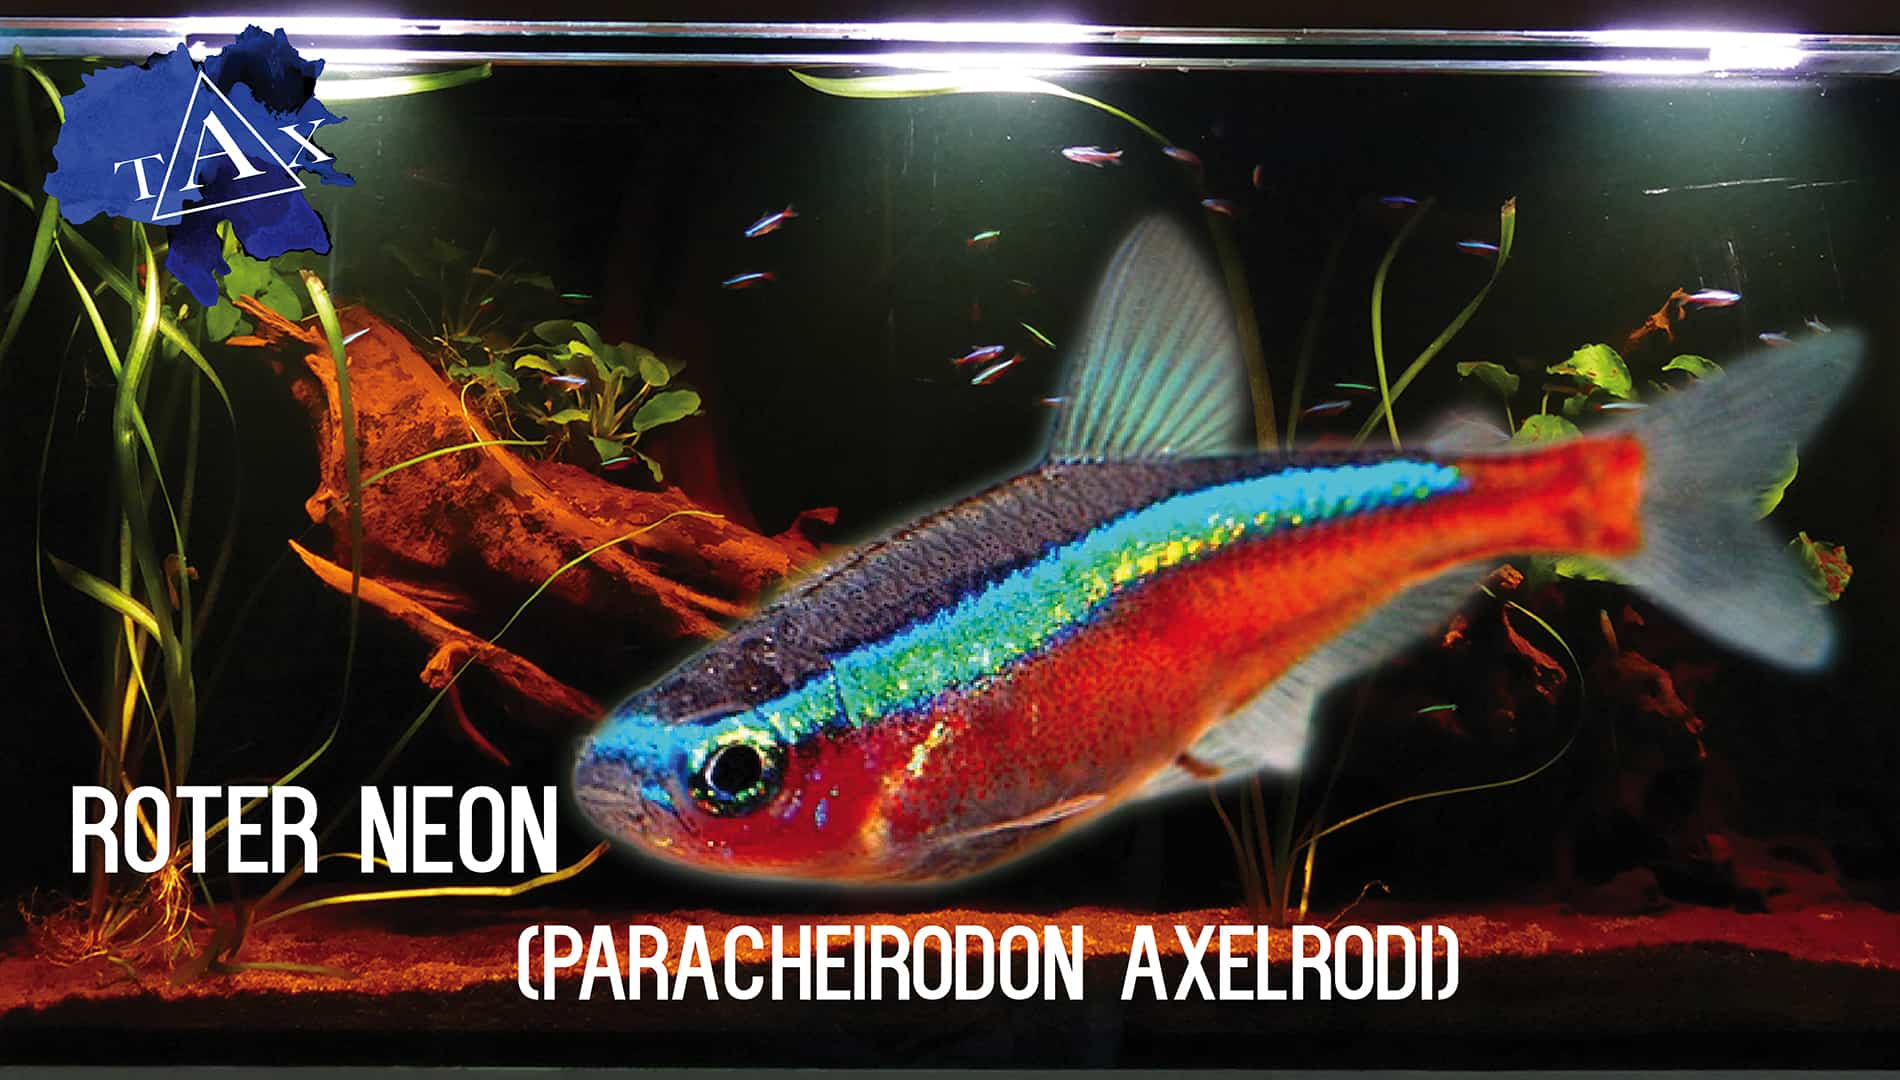 Tobis Aquaristikexzesse Video Tipp: Roter Neon